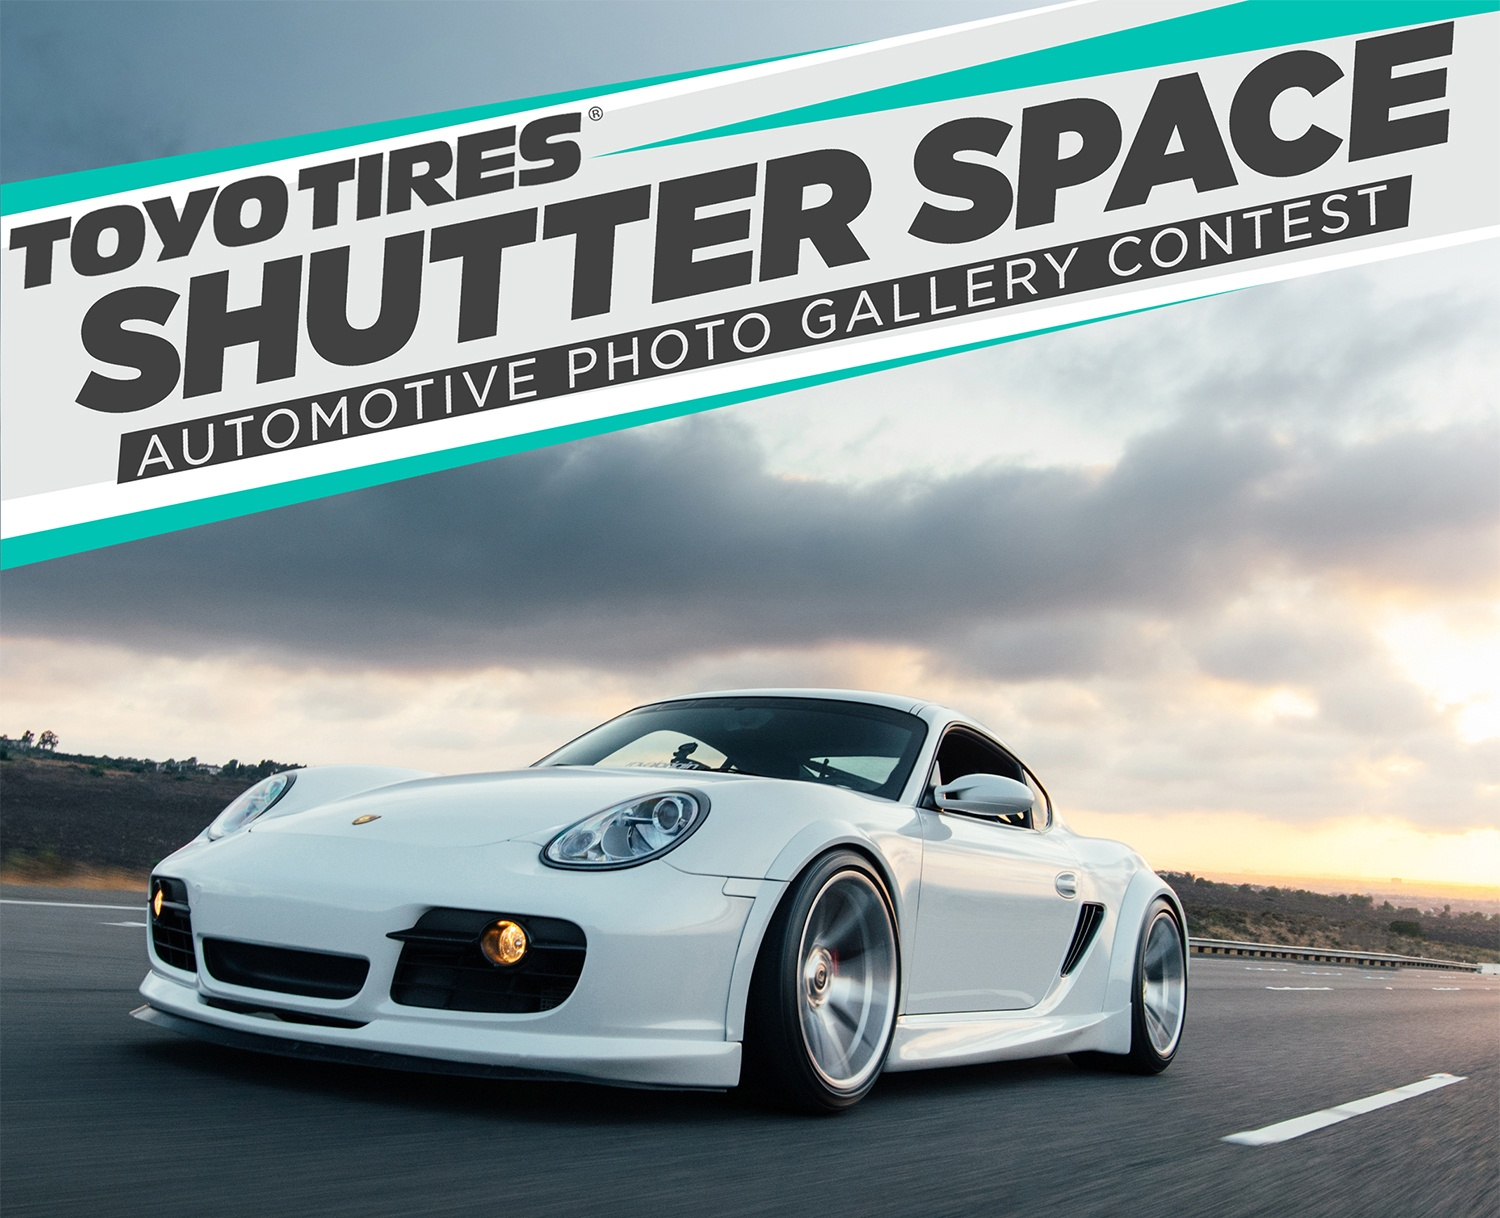 Toyo Tires Shutter Space Automotive Photo Contest Returns for Fifth Year